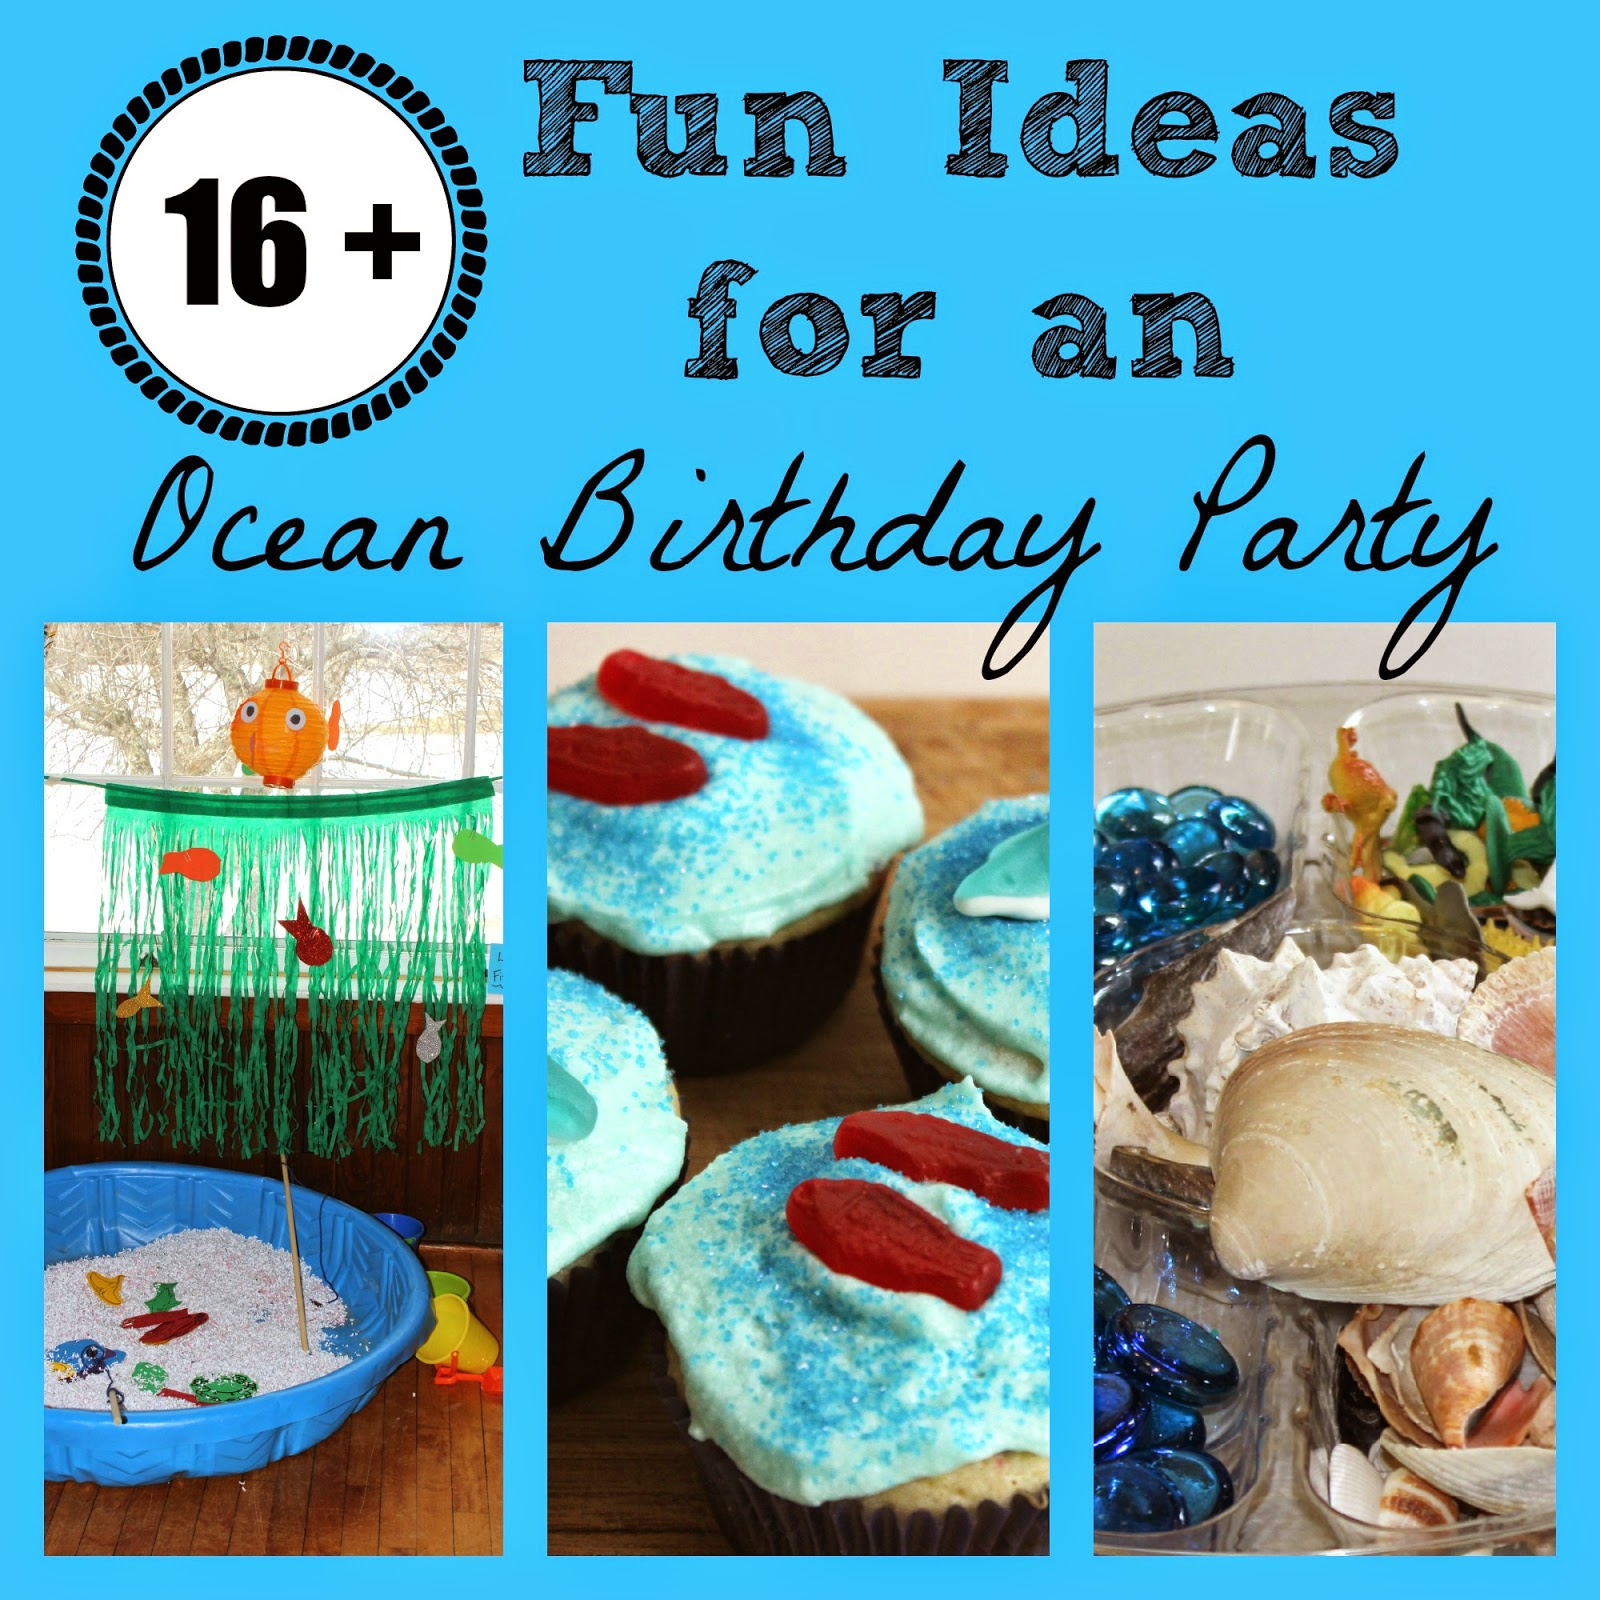 Kitchen Floor Crafts Ocean Birthday Party